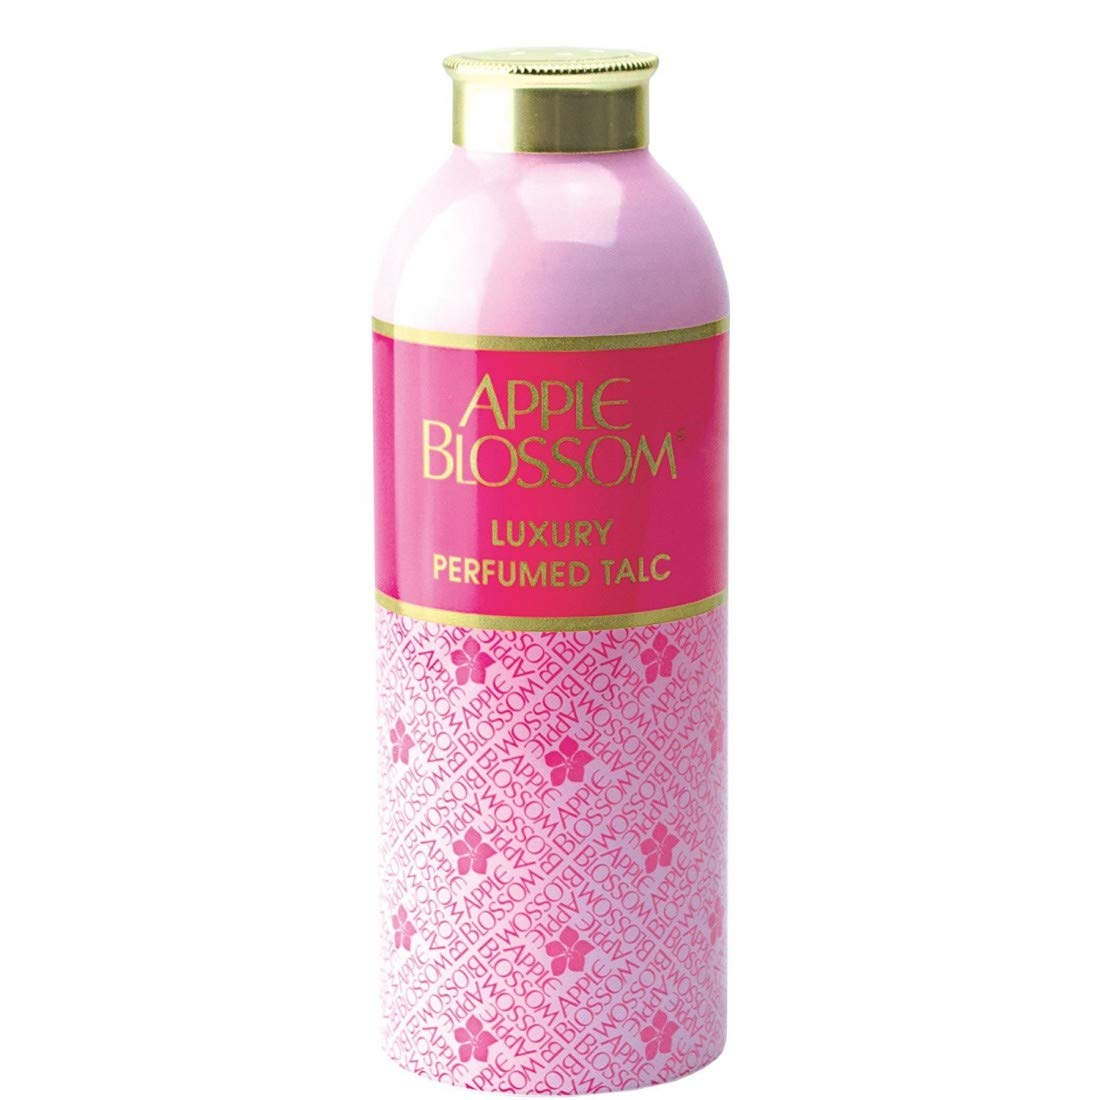 Apple Blossom Talc, 100 g 5017893105359